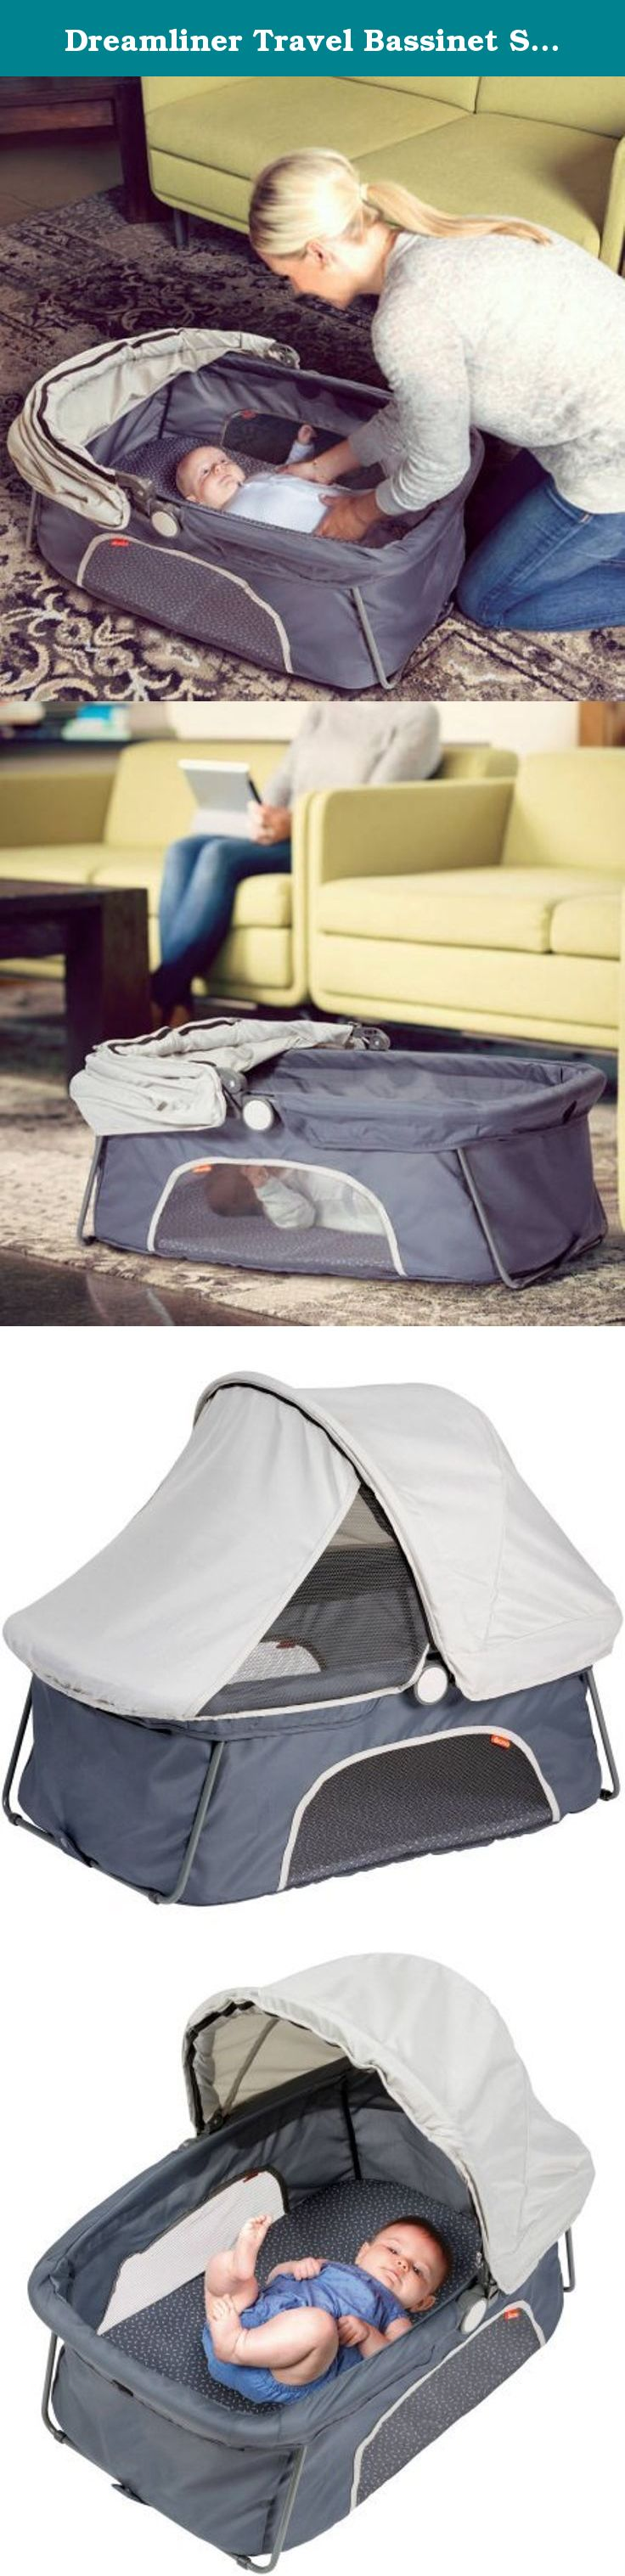 Dreamliner Travel Bassinet Safety Tested For Peace Of Mind, Gray. The Diono  Dreamliner Is